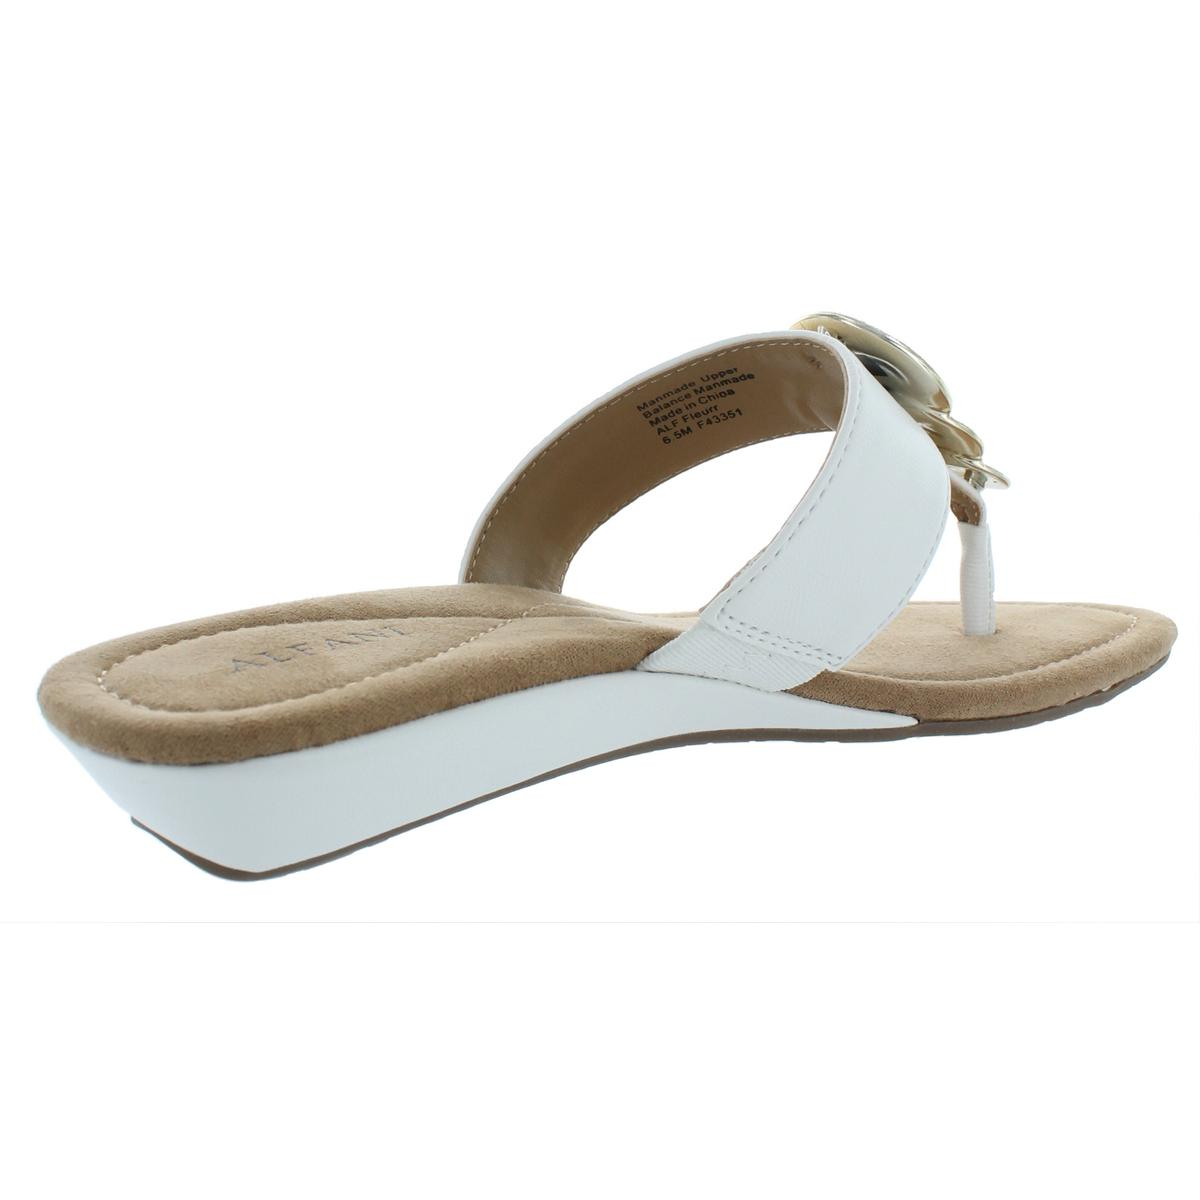 Alfani-Womens-Fleurr-Faux-Leather-Padded-Insole-Wedge-Sandals-Shoes-BHFO-6592 thumbnail 8